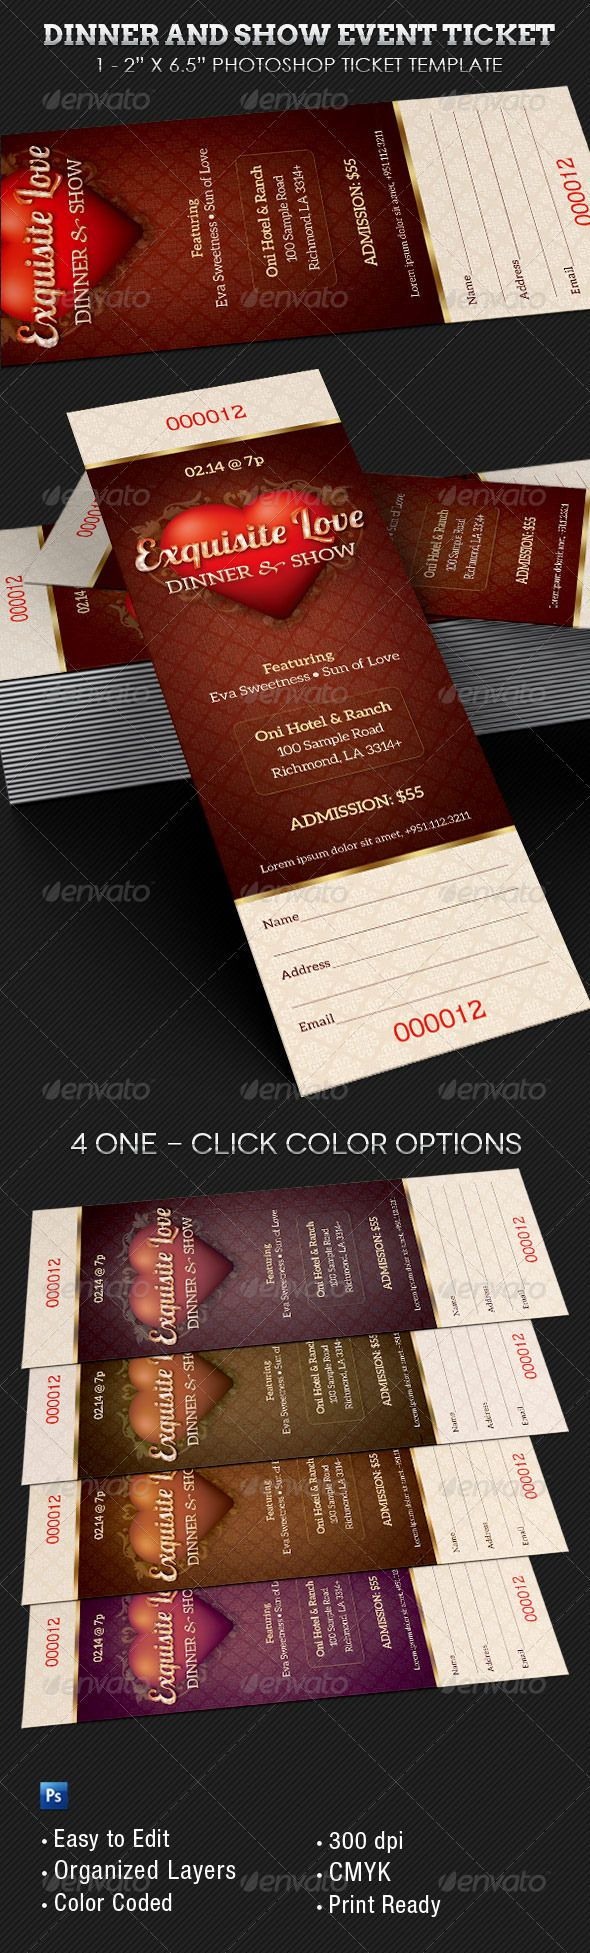 Dinner And Dance Event Ticket Template Miscellaneous Print